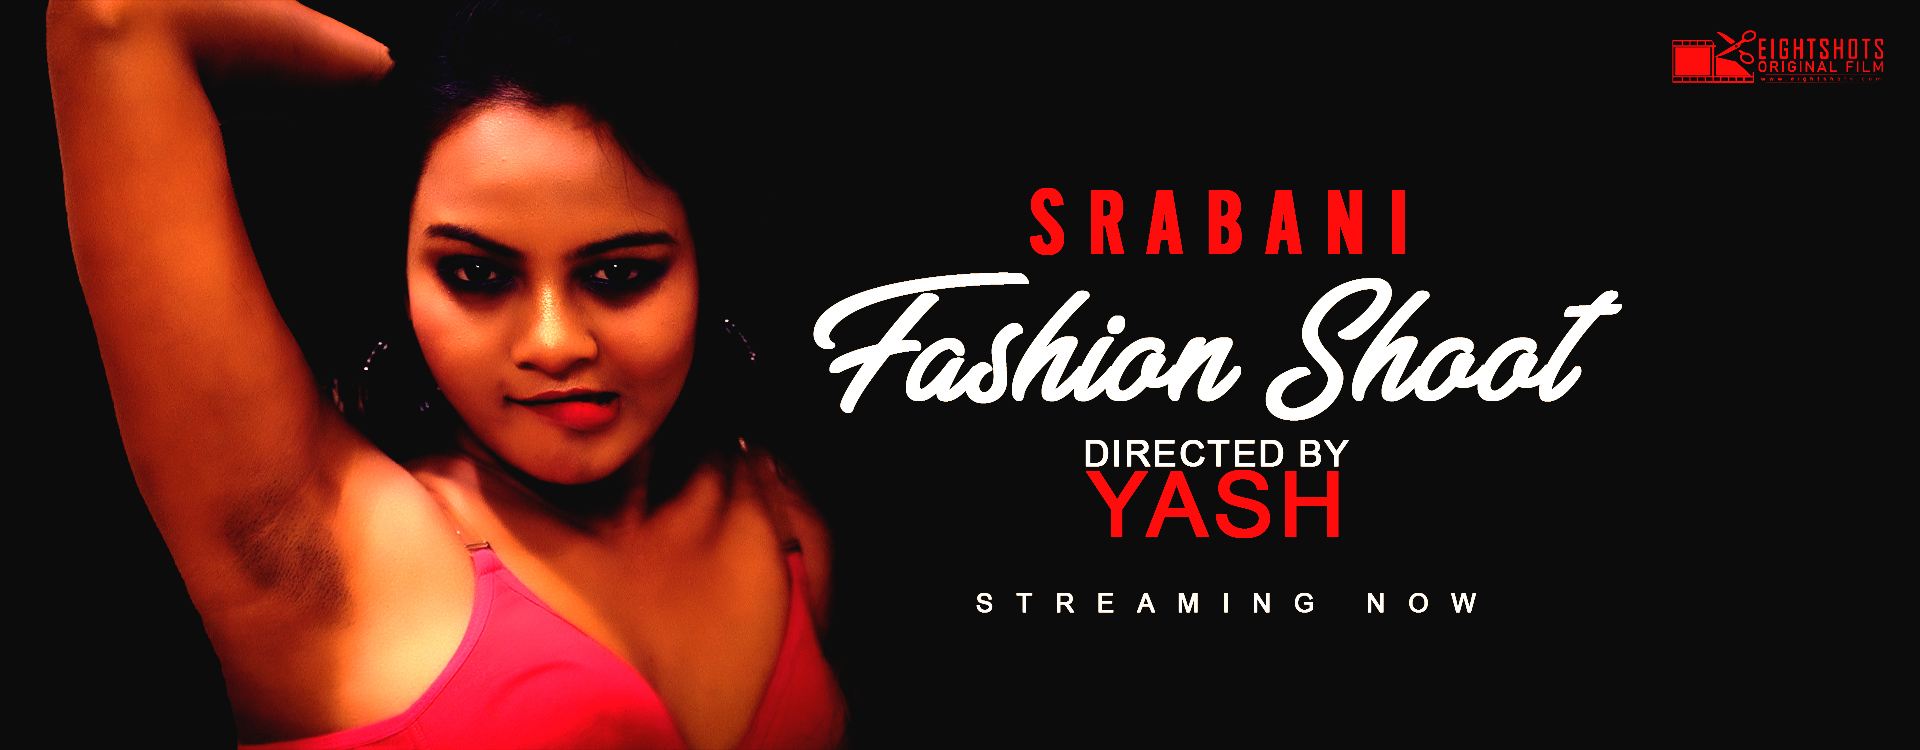 Srabani Fashion 2020 Hindi EightShots Fashion Video 720p HDRip 58MB Download